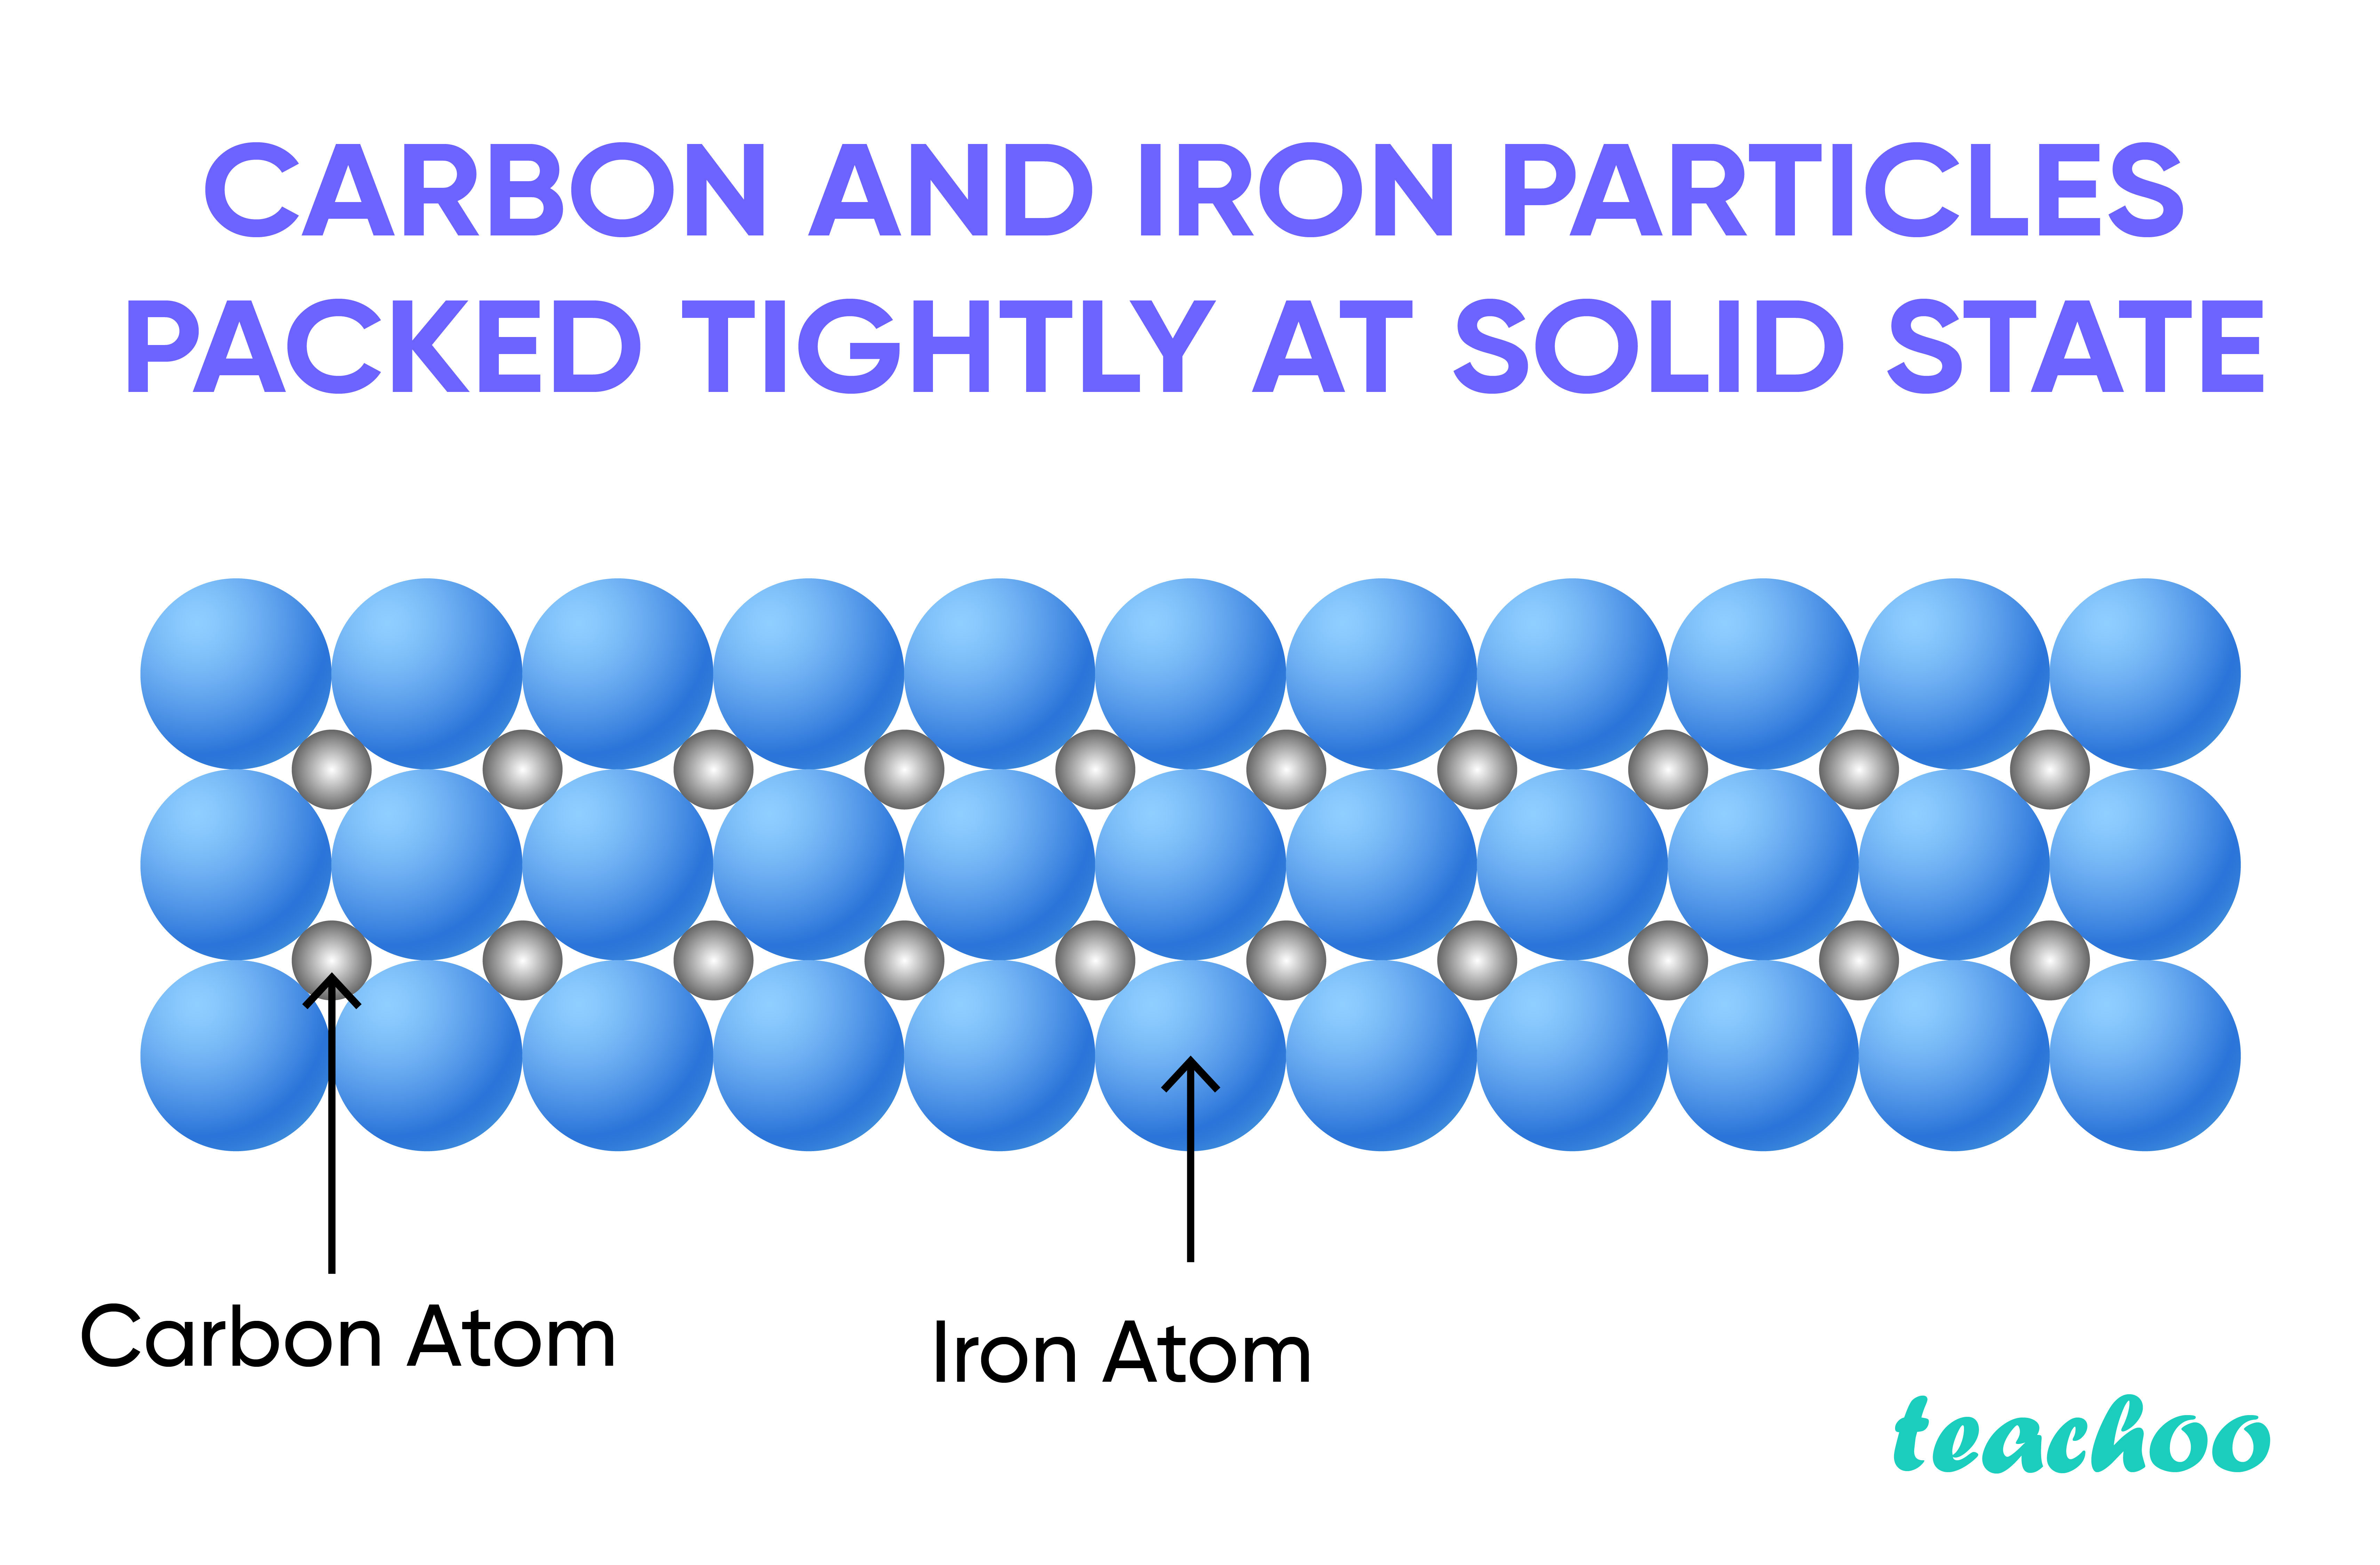 Carbon and Iron particles packed tightly at solid state-Teachoo-01.jpg